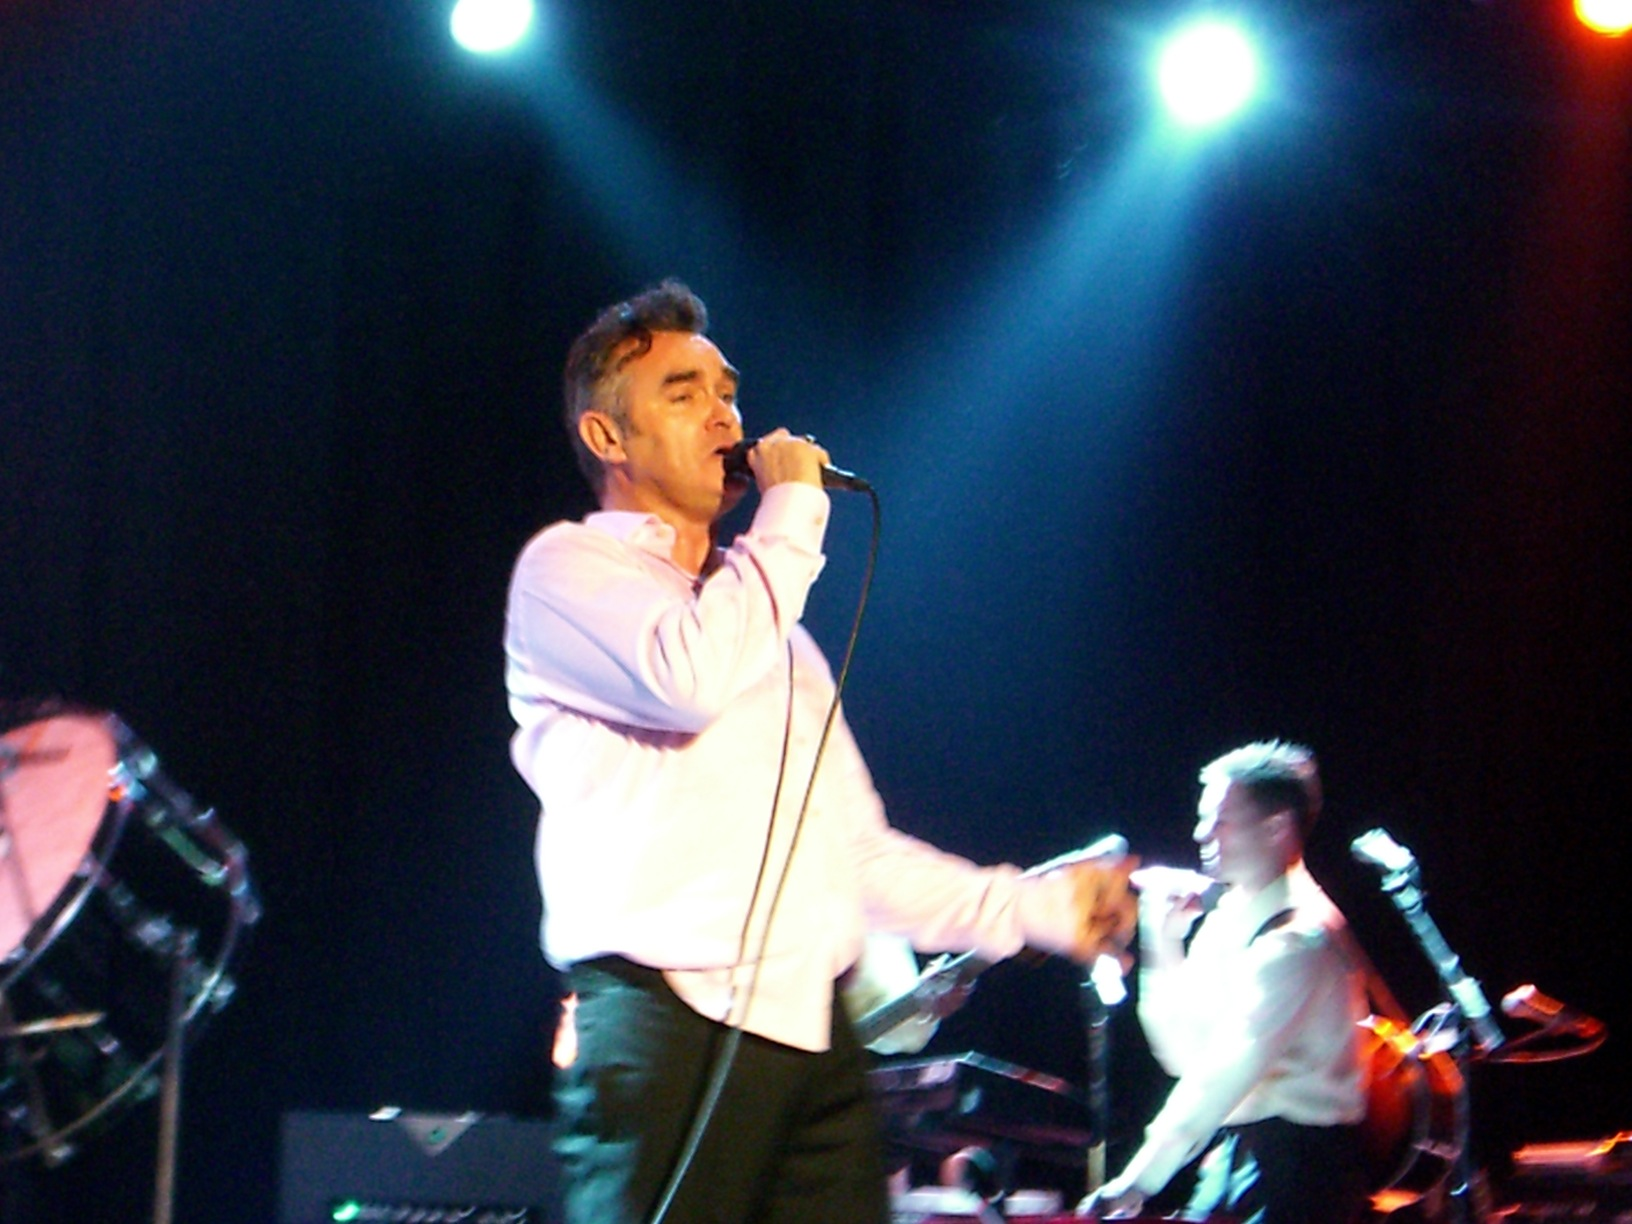 Morrissey_Live_at_SXSW_Austin_in_March_2006-8